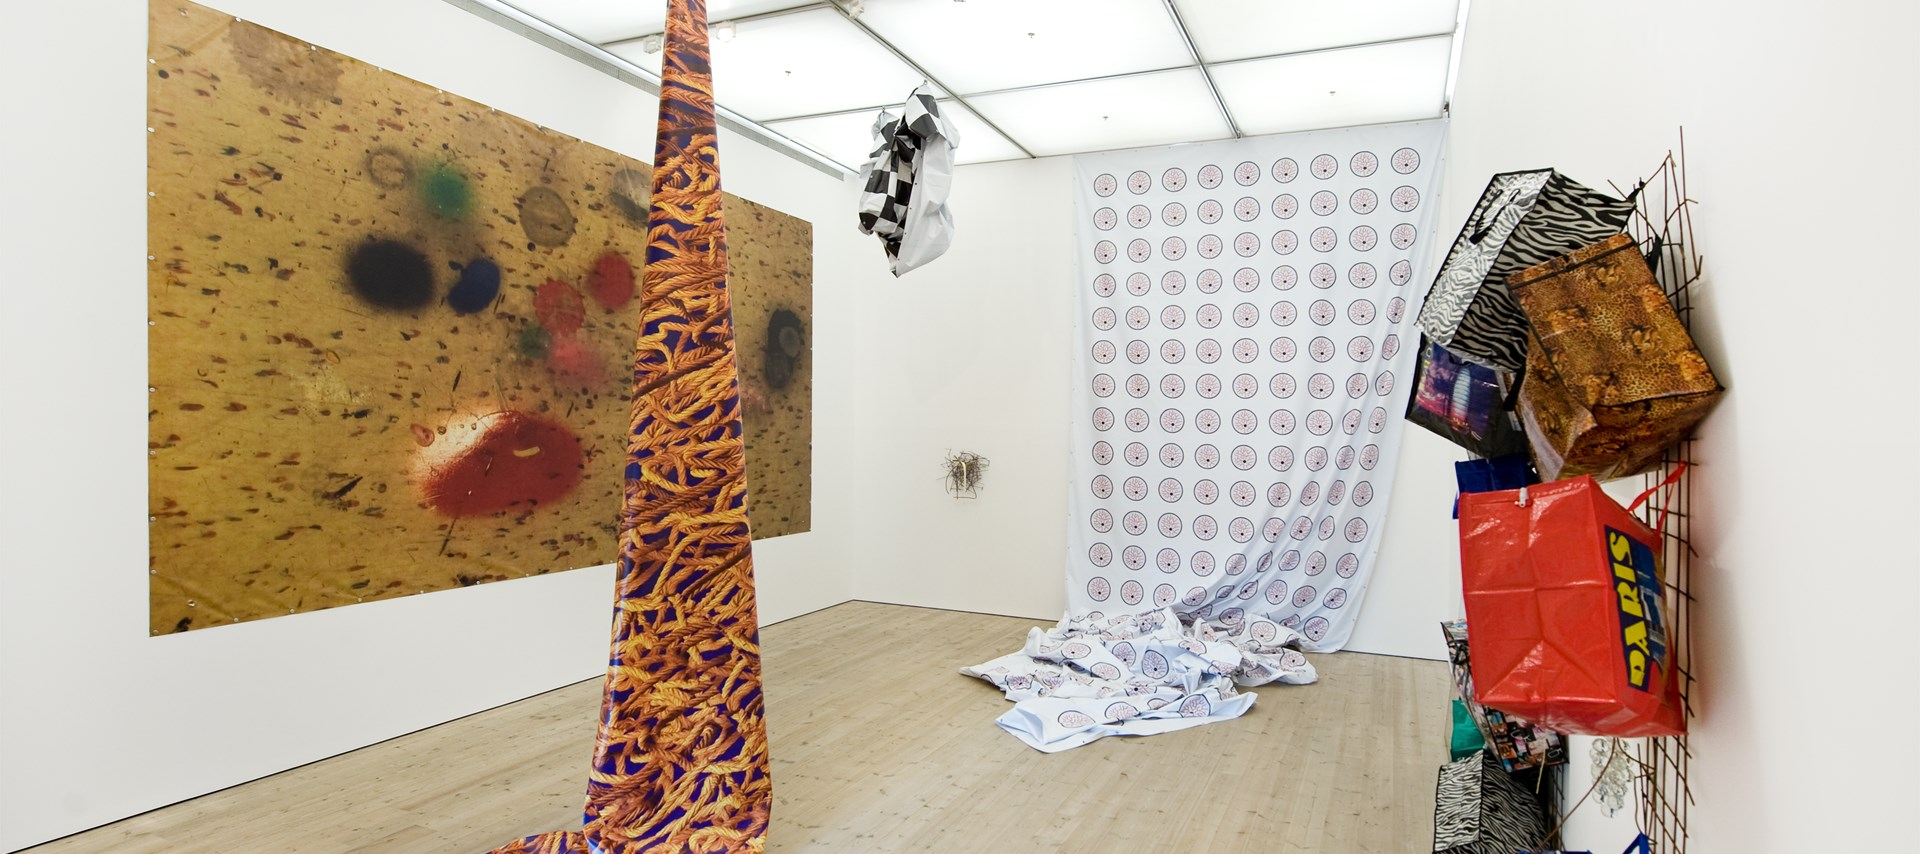 Jack Lavender: Installation view by Colin Davison © 2015, BALTIC.